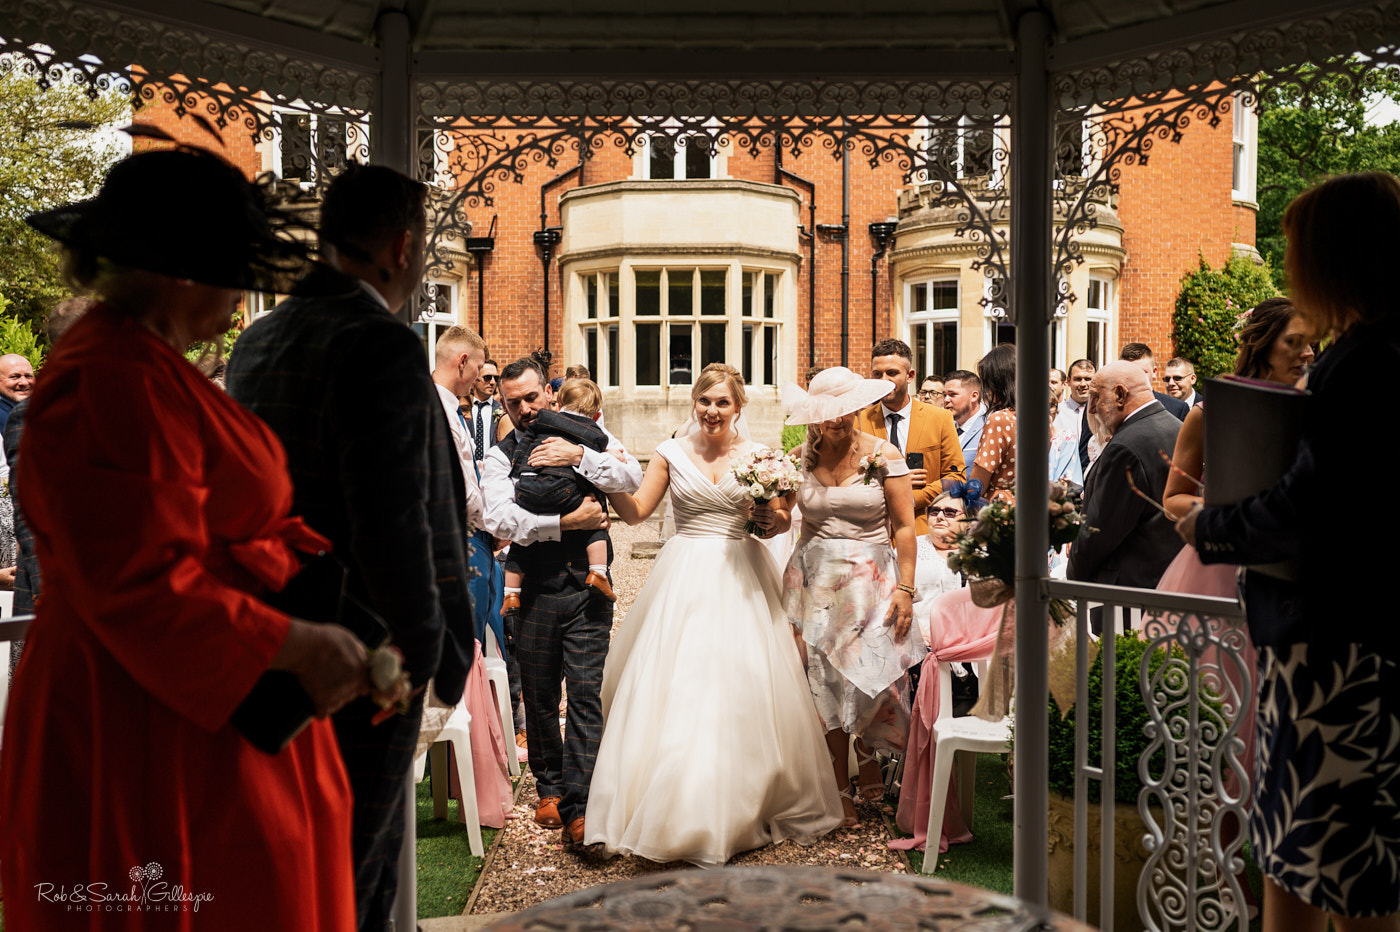 Outdoor wedding at Pendrell Hall